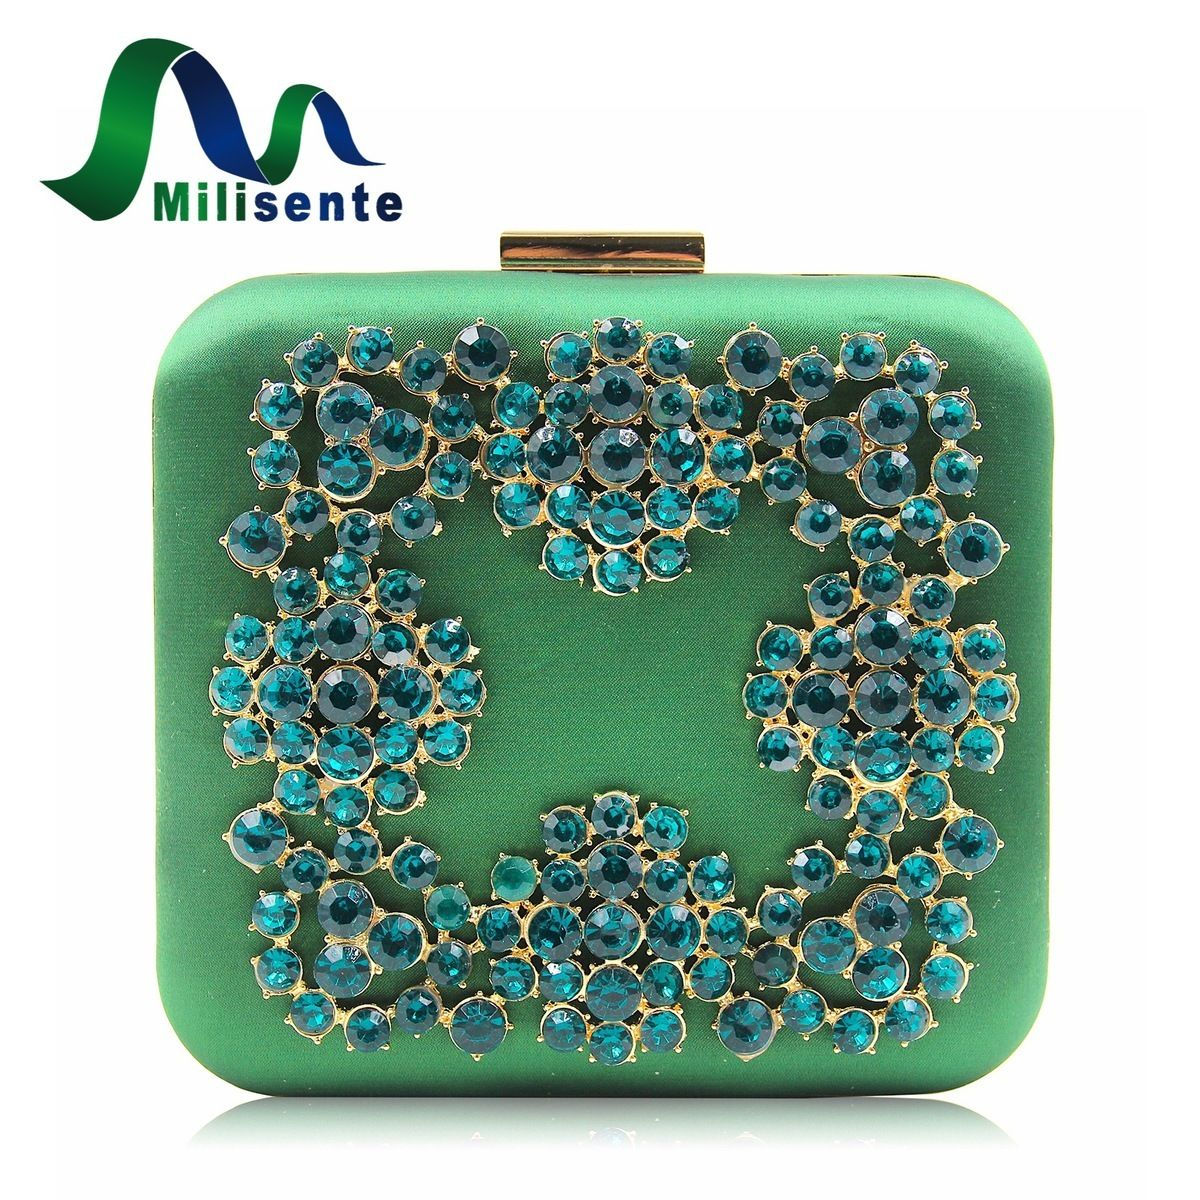 159bf2cabc6a Aliexpress.com : Buy Milisente New Retro Wind Satin Fabric Women Evening  Bag Purse Blue Diamond Box Clutch Ladies Wedding Purses Party Bag from  Reliable ...